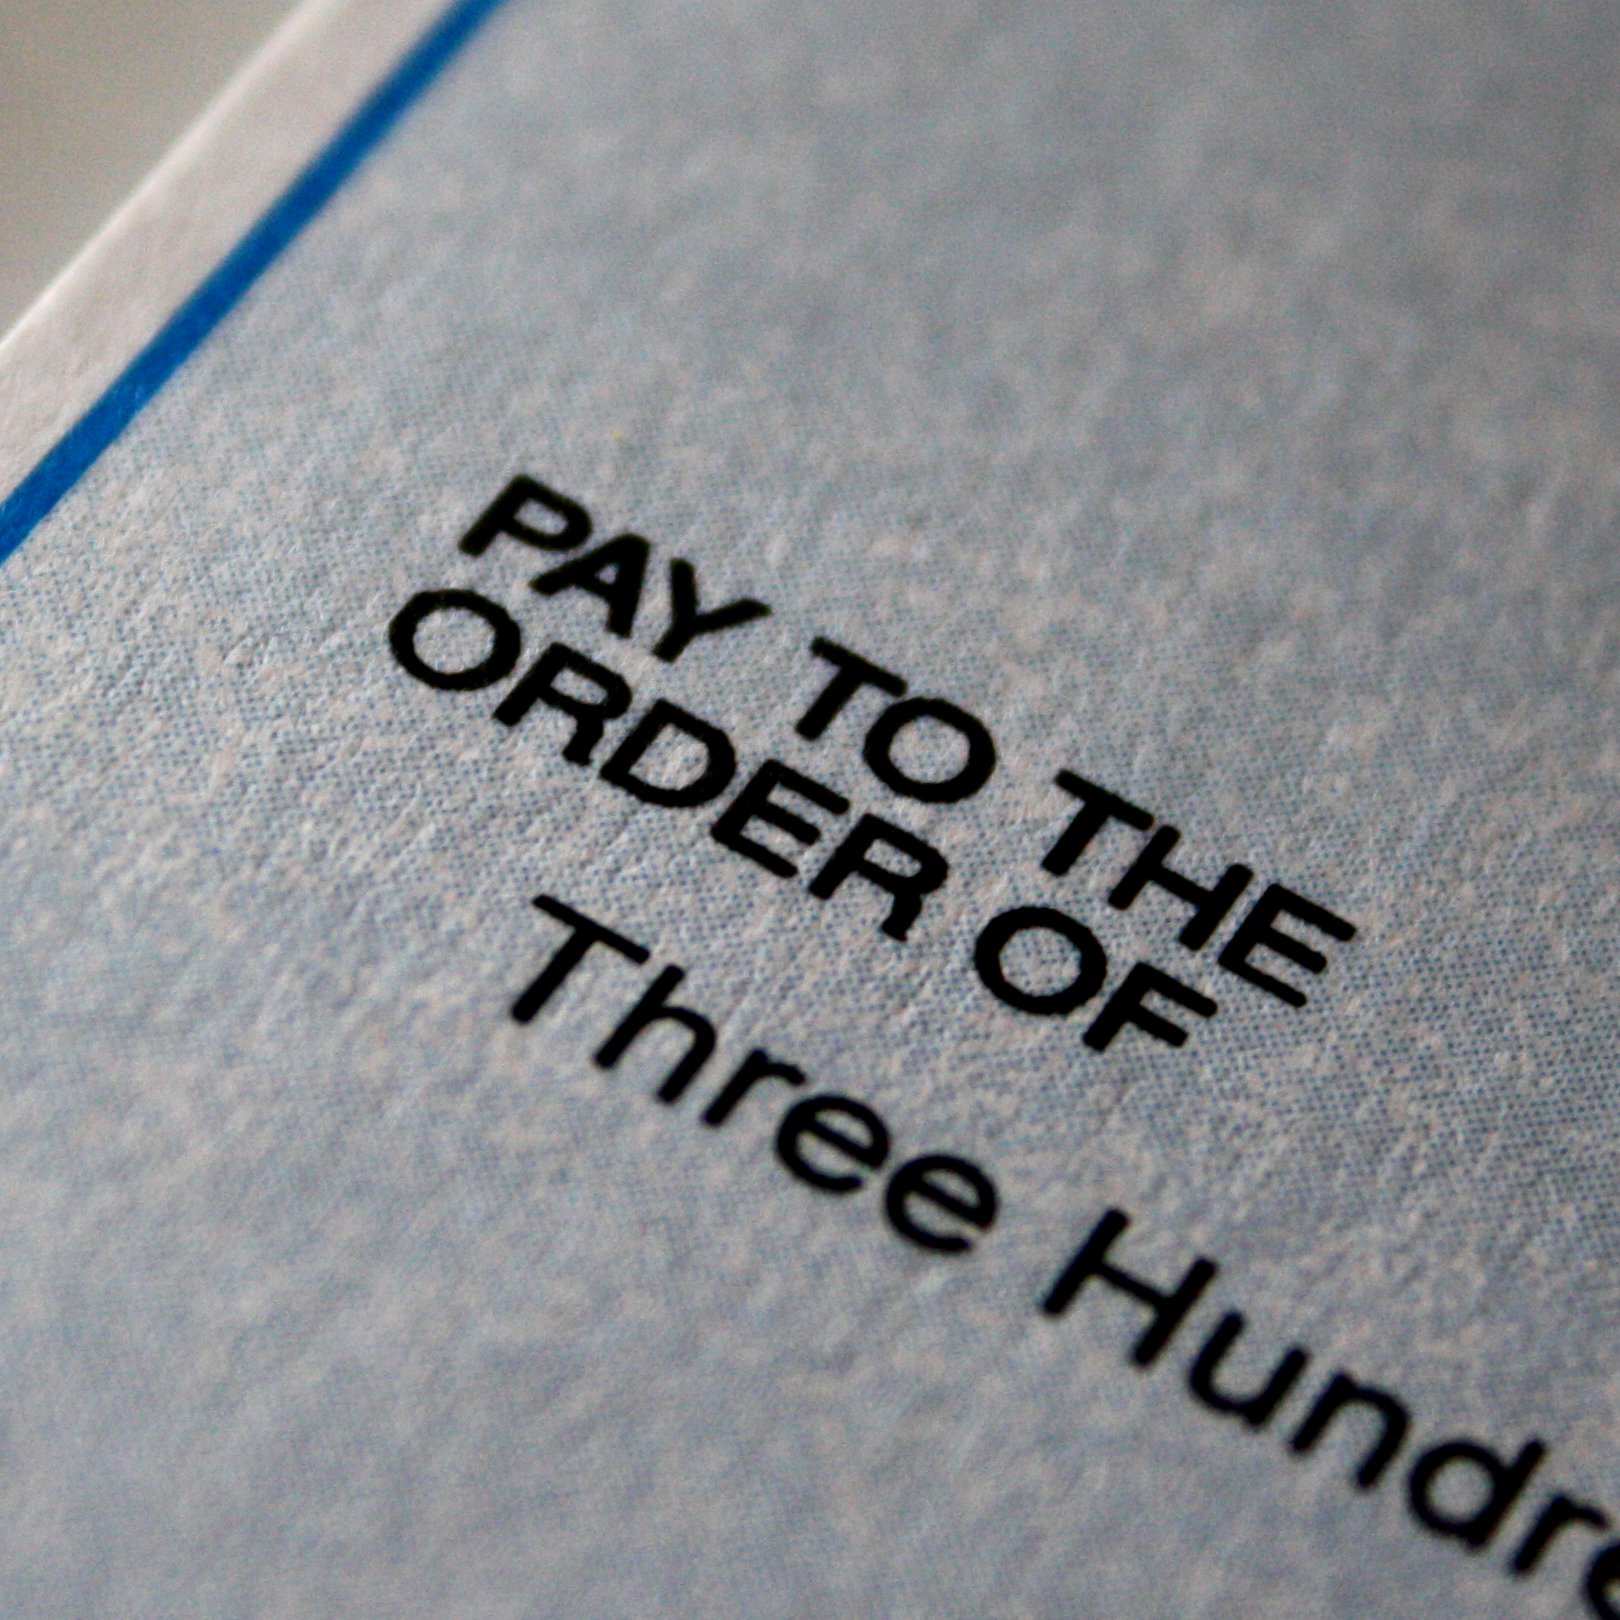 Pay To The Order Of Check Closeup Photos Public Domain - Pay-to-the-order-of